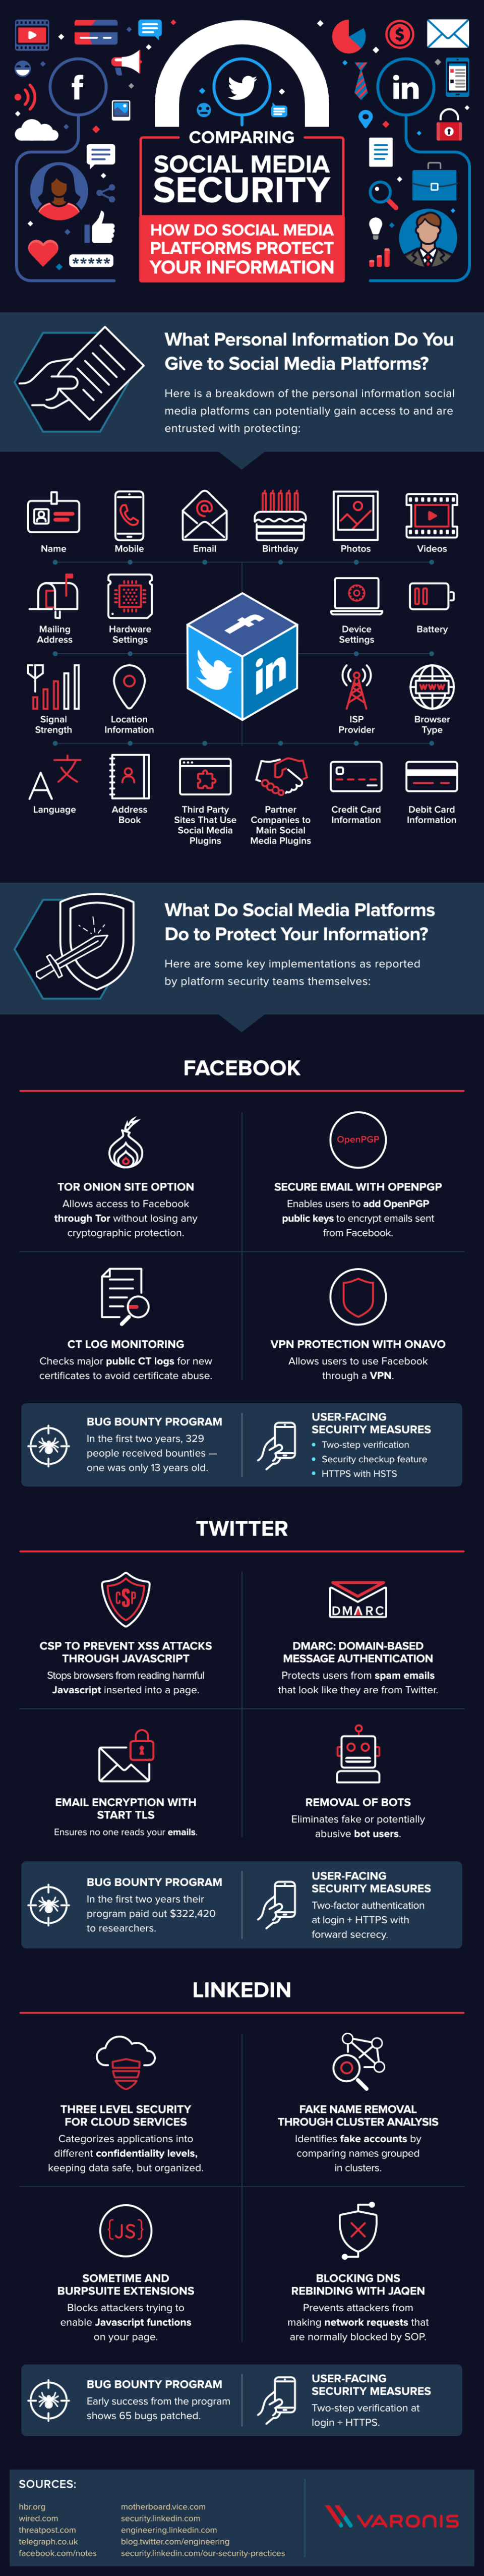 Social media security: how safe is your data? #infographic